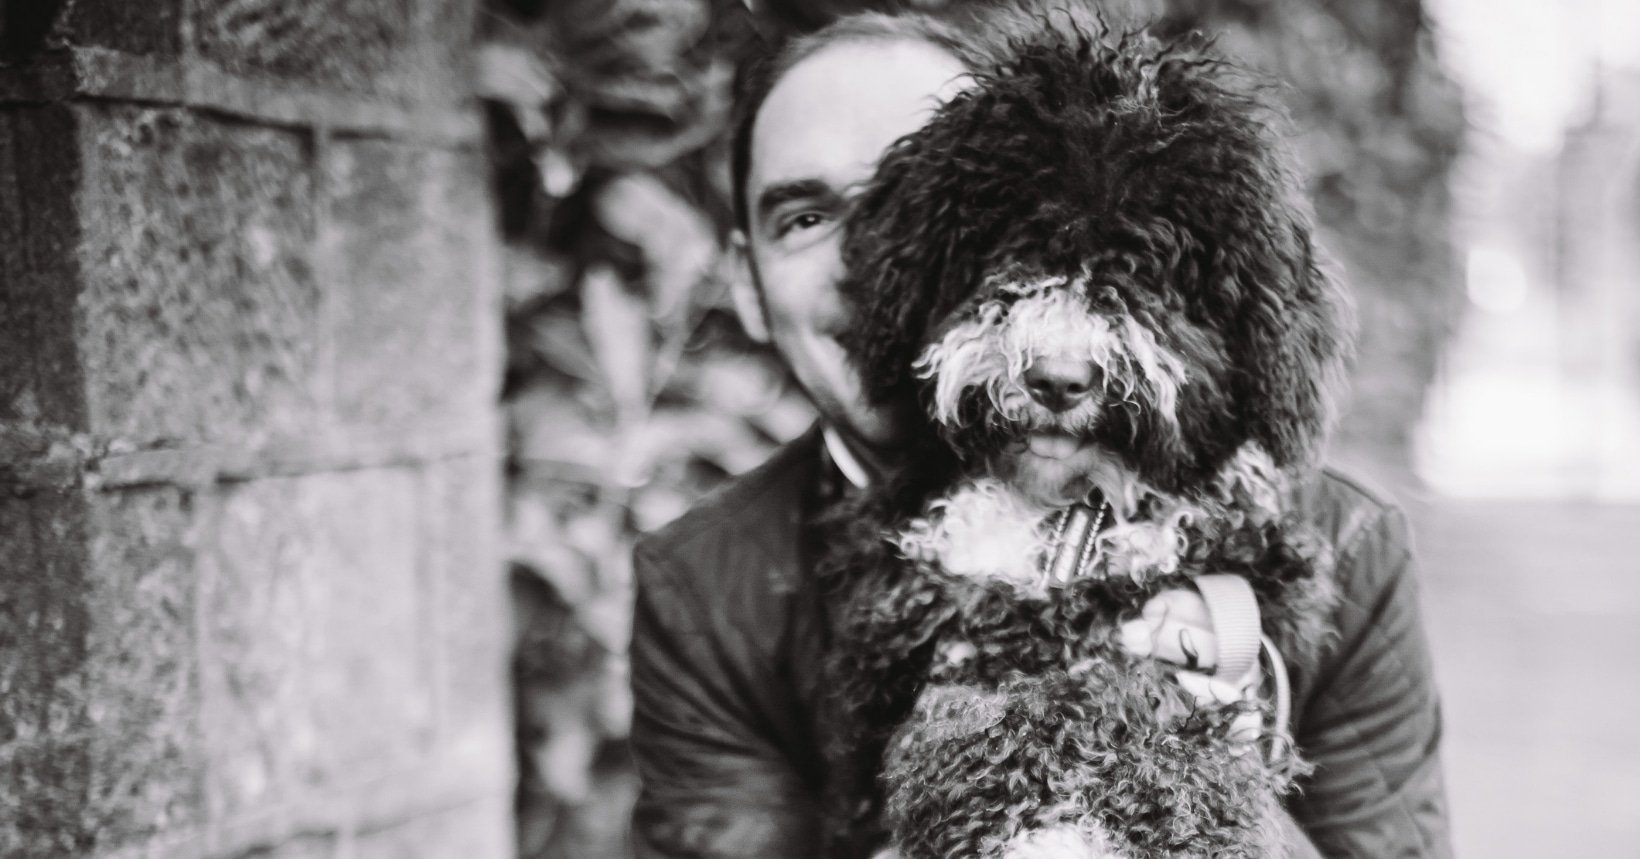 Twoodle Co Founder Tim Rundle Wood with Henry the dog